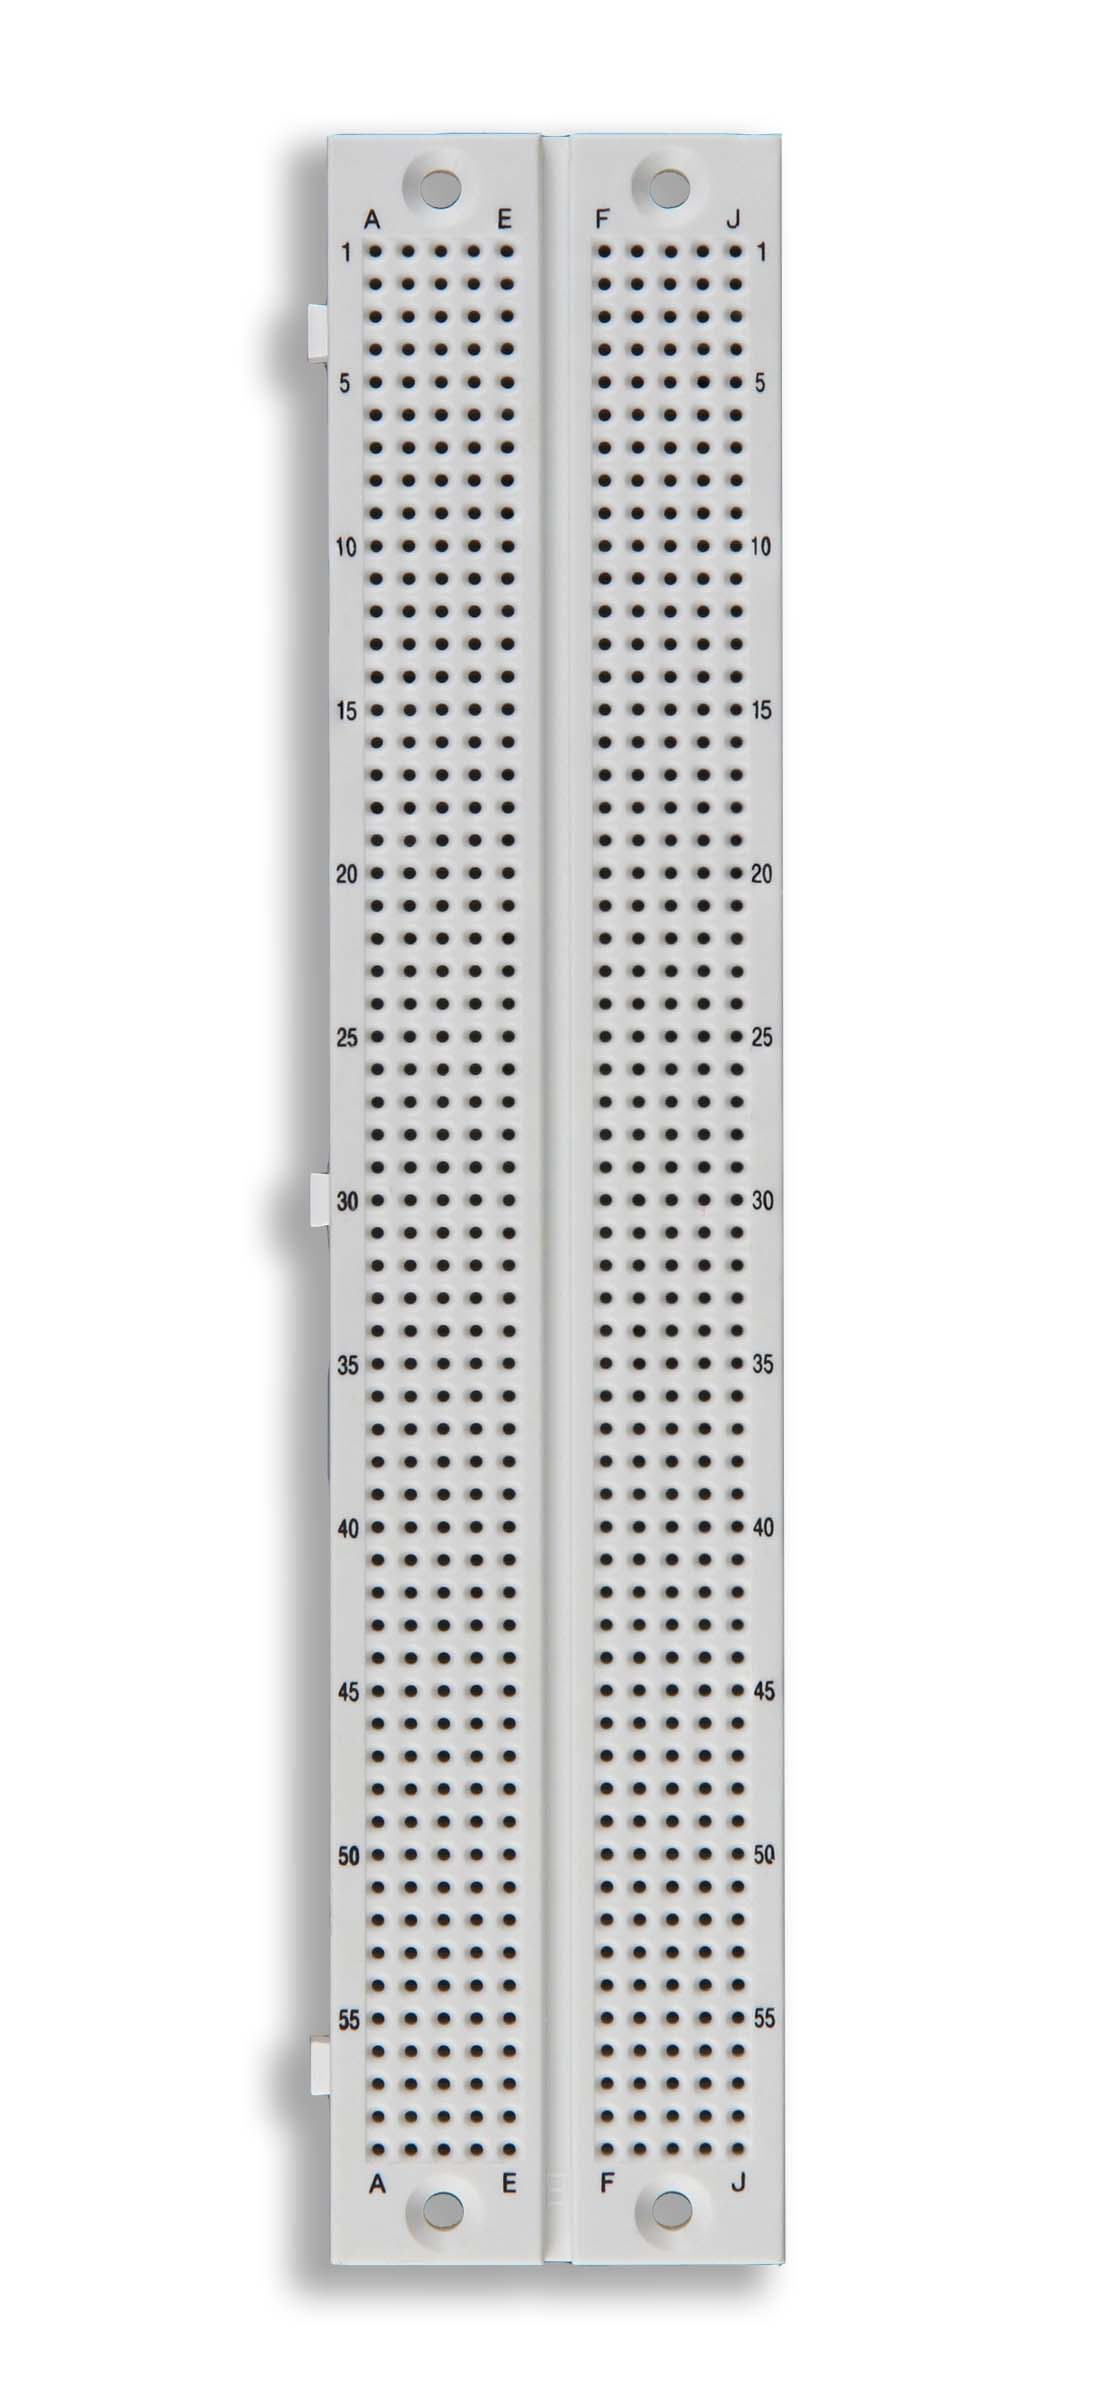 Global Specialties GS-590 Solderless Breadboard, 590 Tie-Points